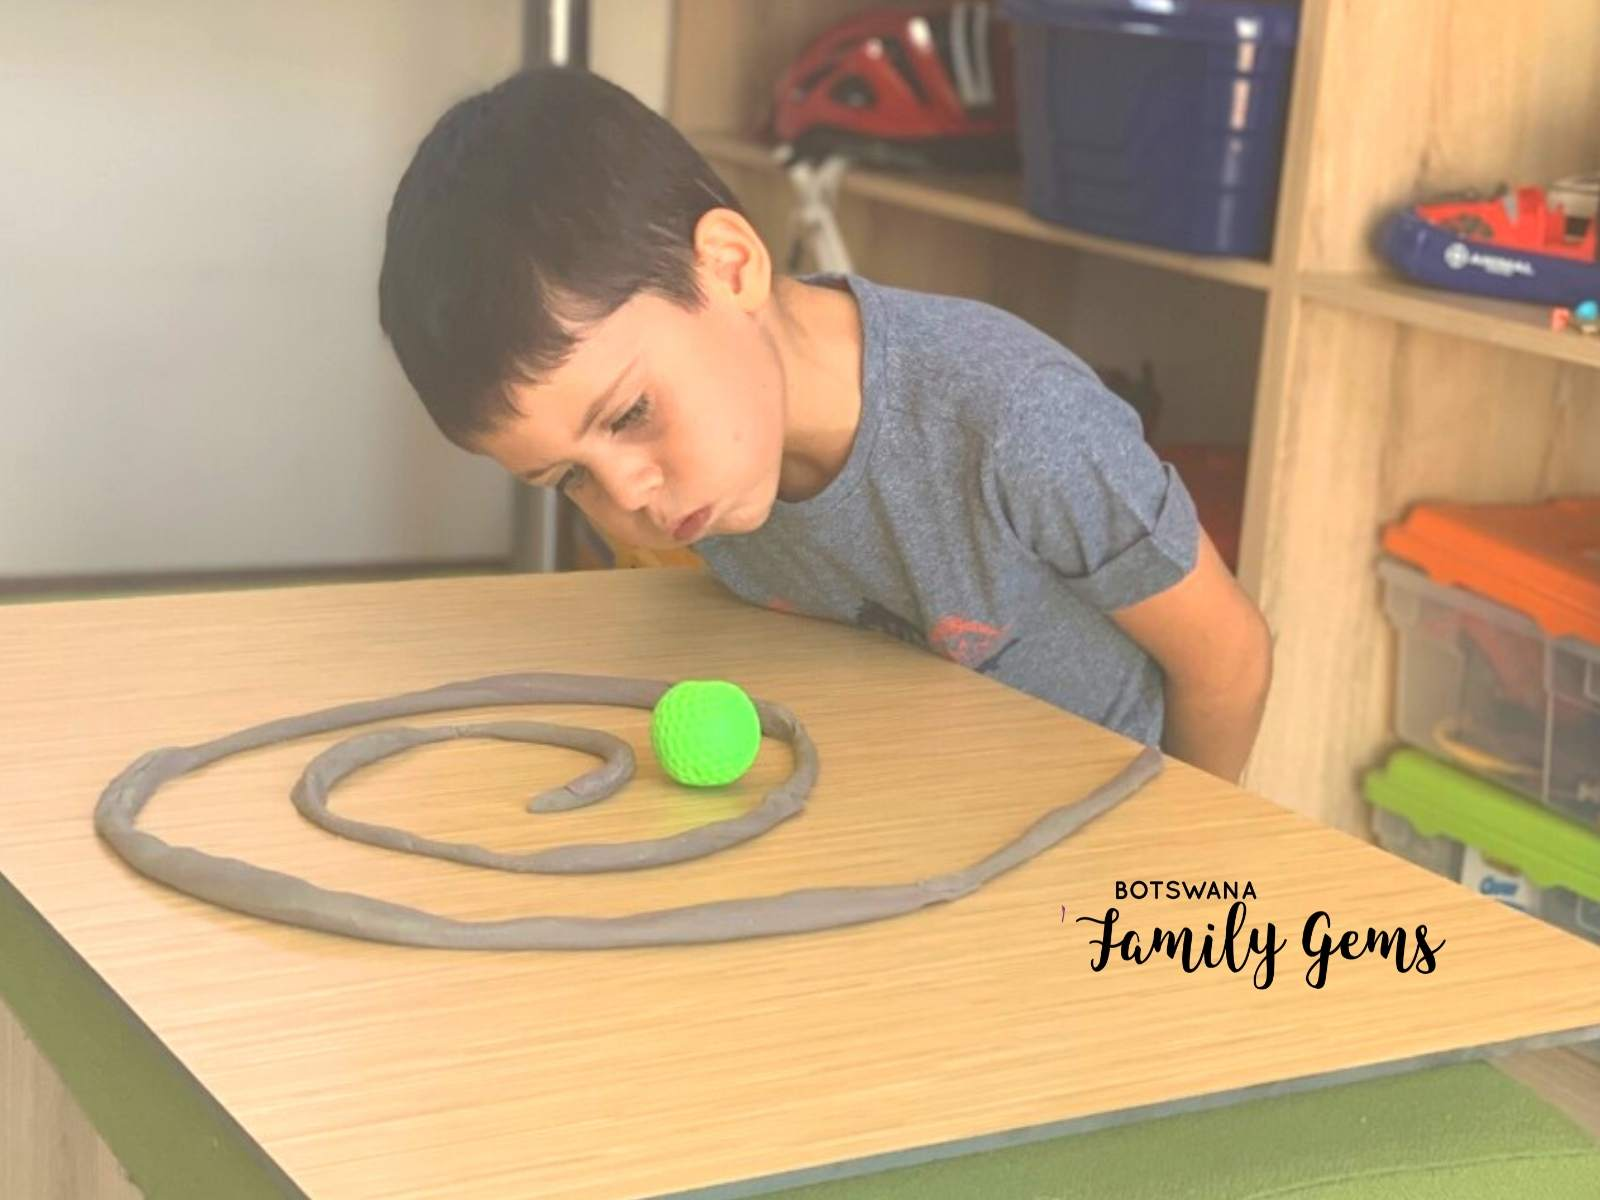 keeping busy at home with fun activities